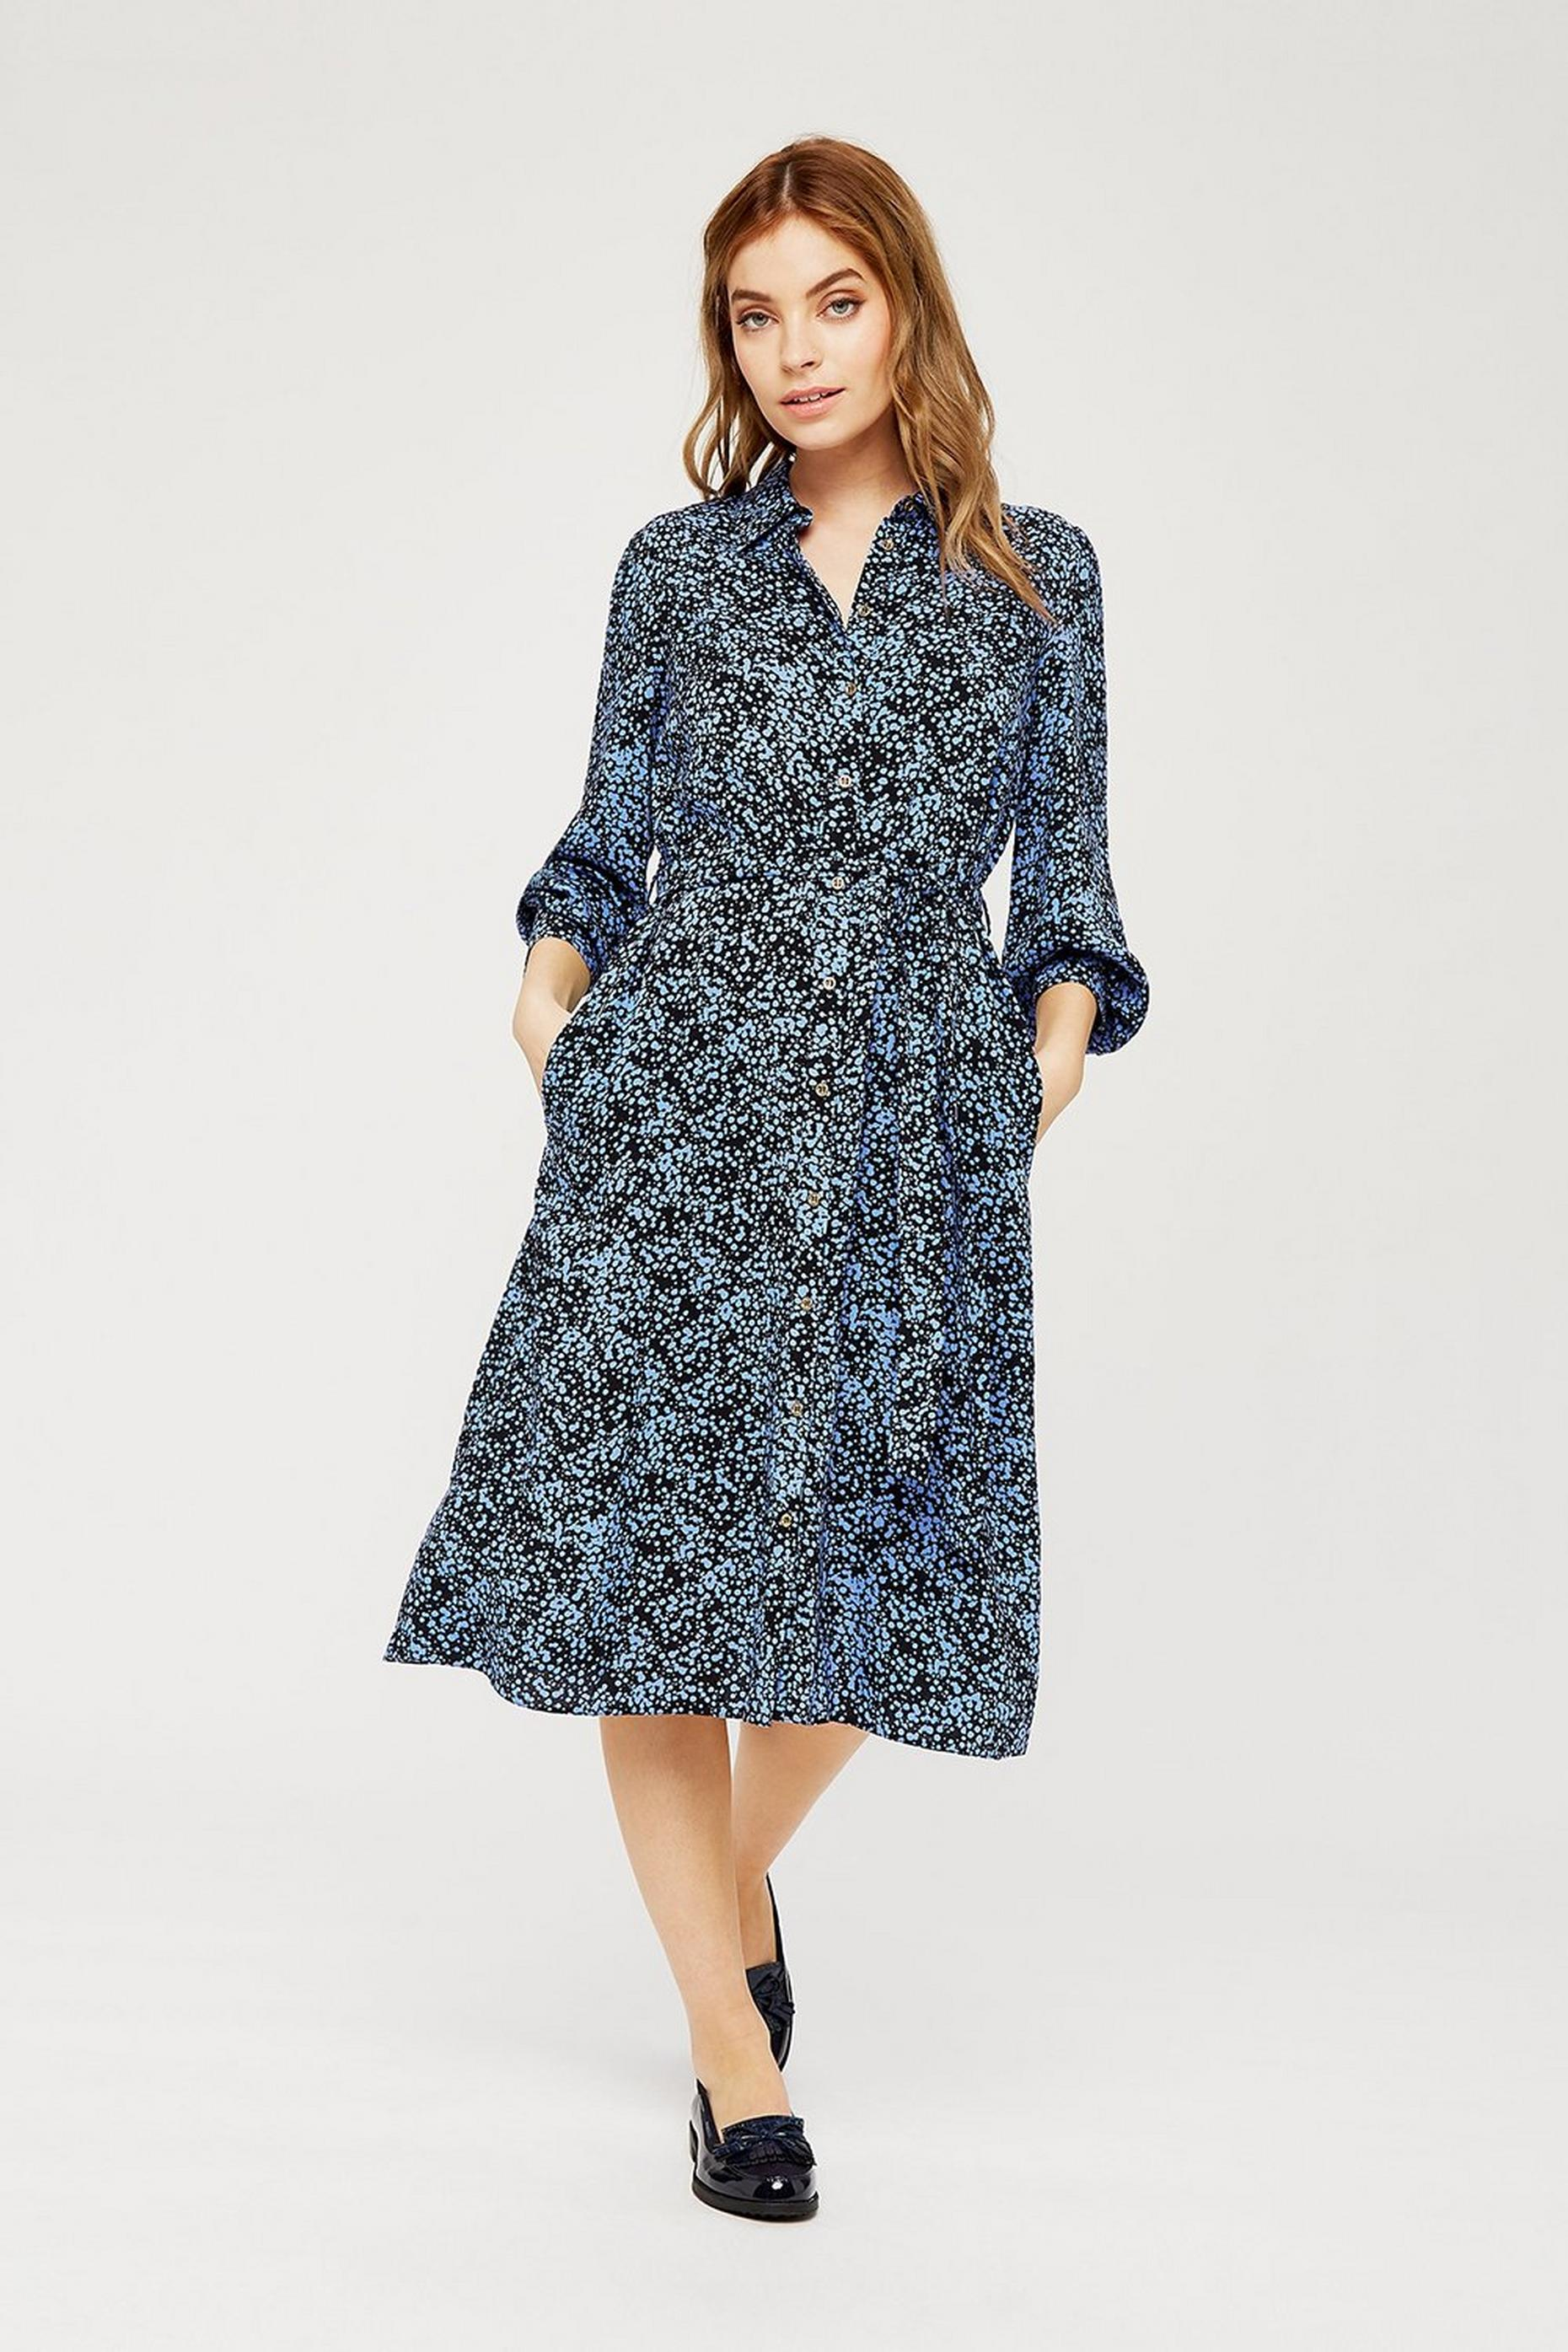 Petites Navy Floral Print Shirt Dress